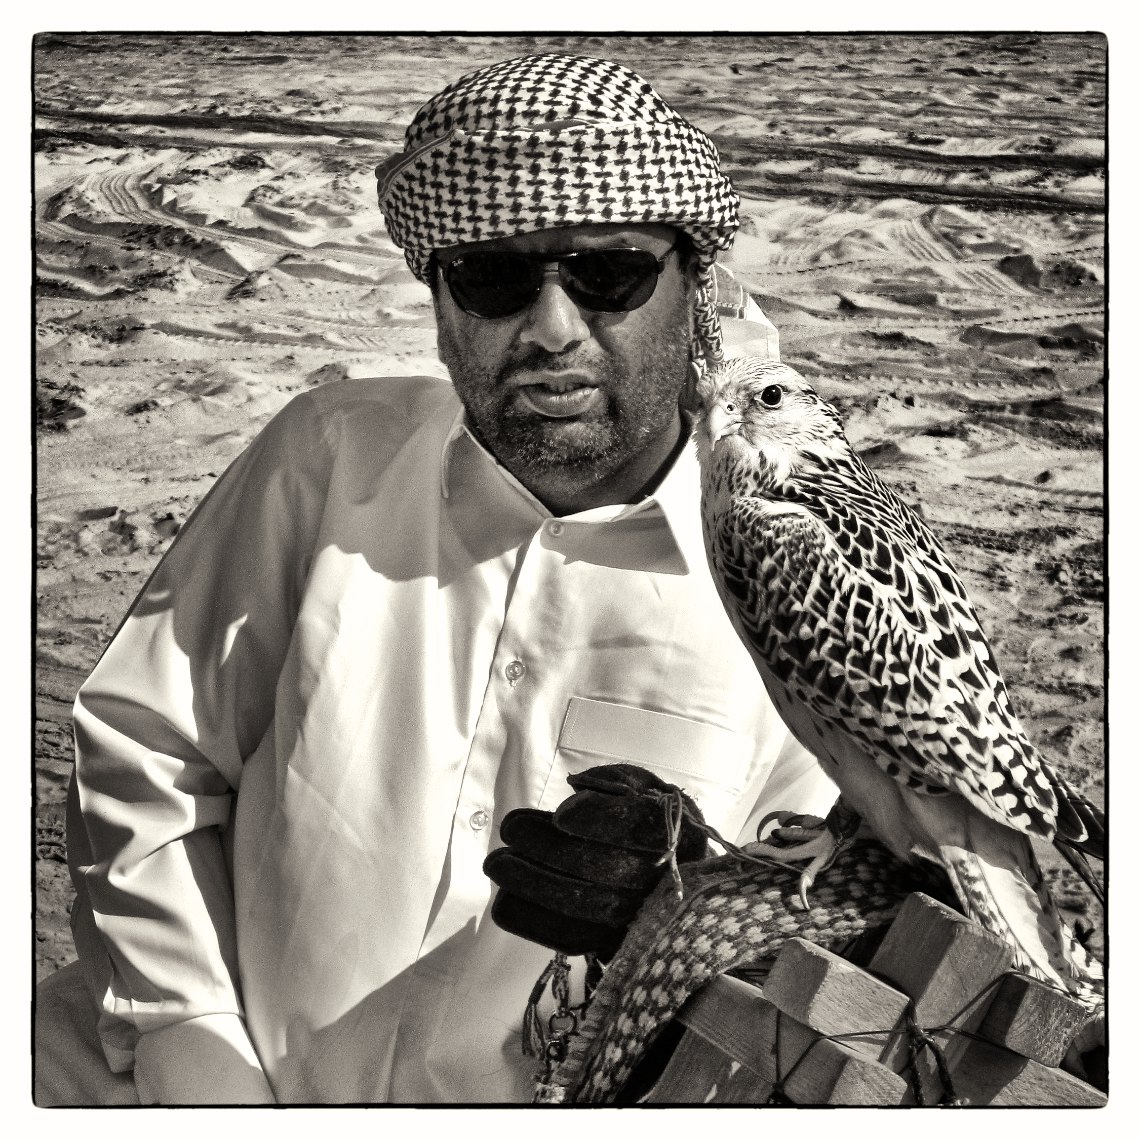 Qatar Inland Sea, man with falcon